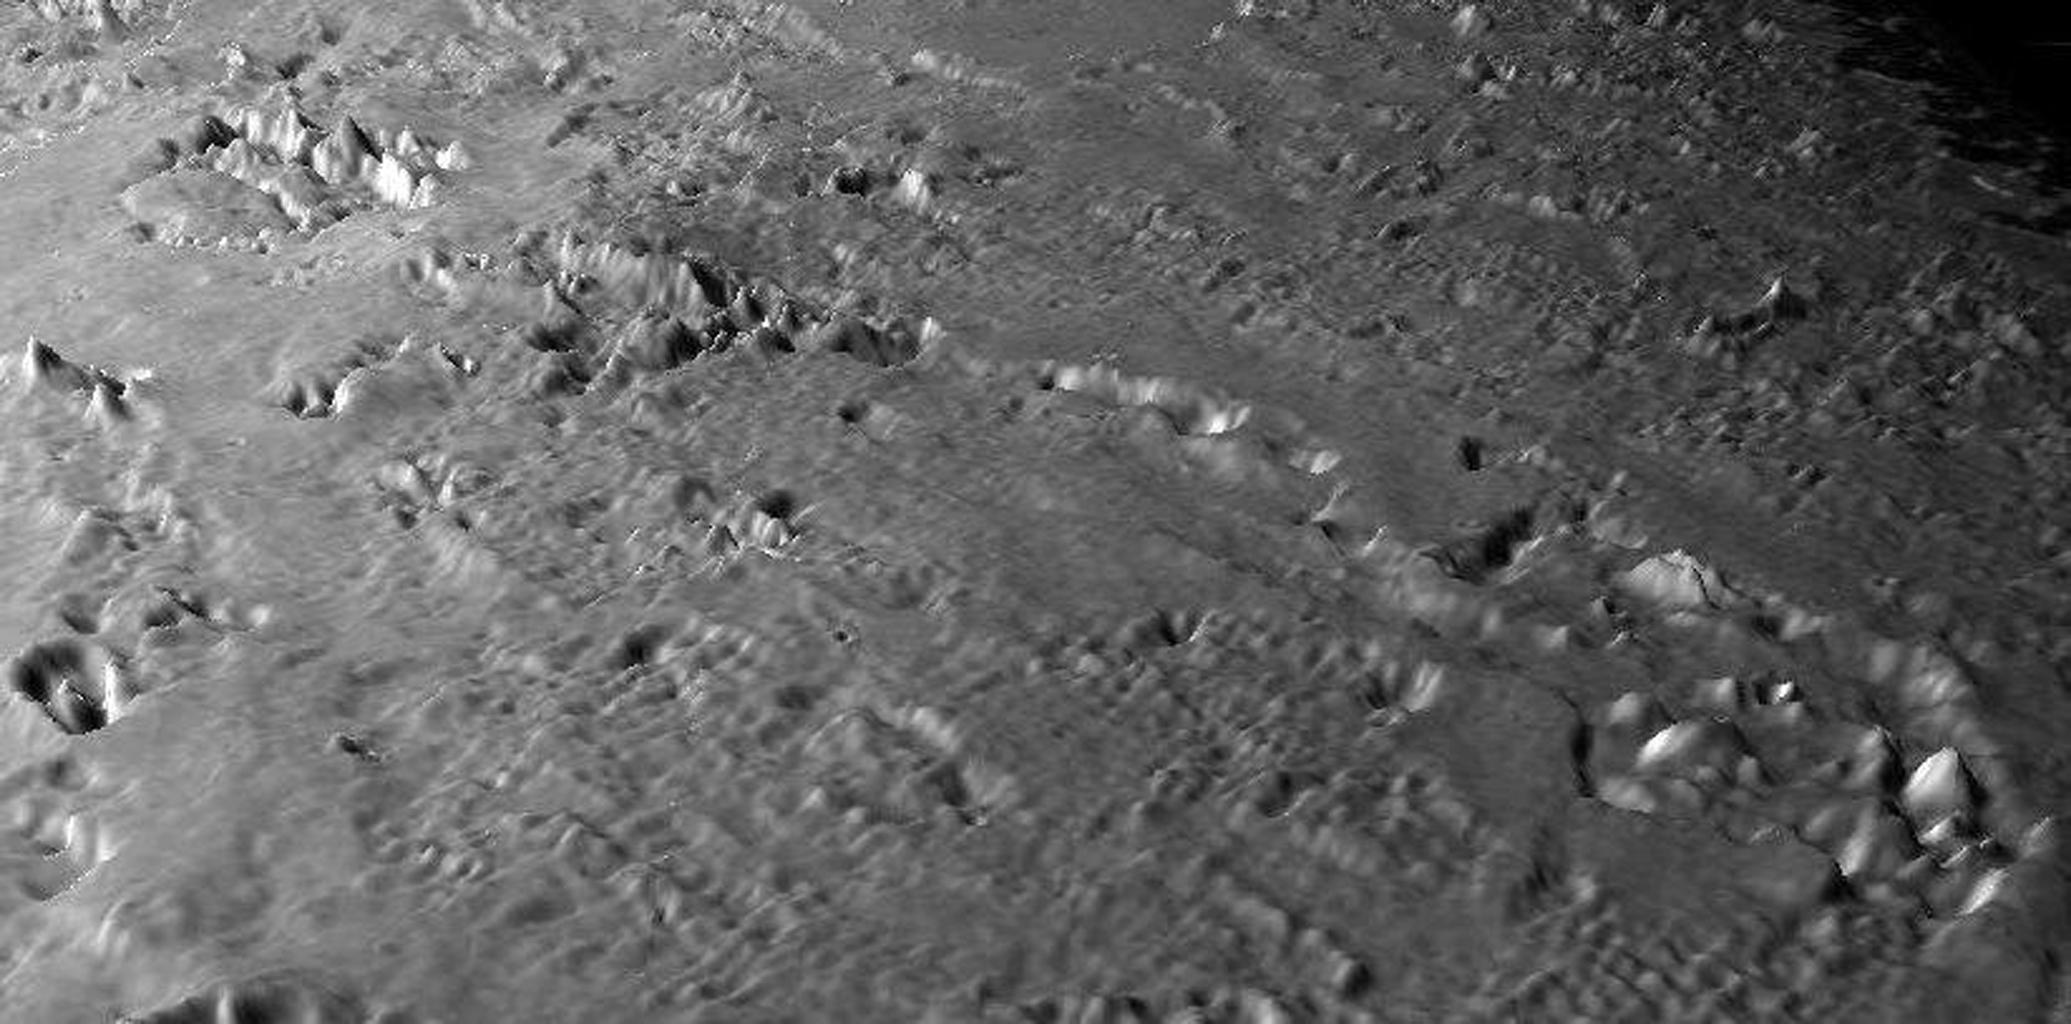 This view of the volcanic plains of Neptune's moon Triton was produced using topographic maps derived from images acquired by NASA's Voyager spacecraft during its August 1989 flyby, 20 years ago this week.